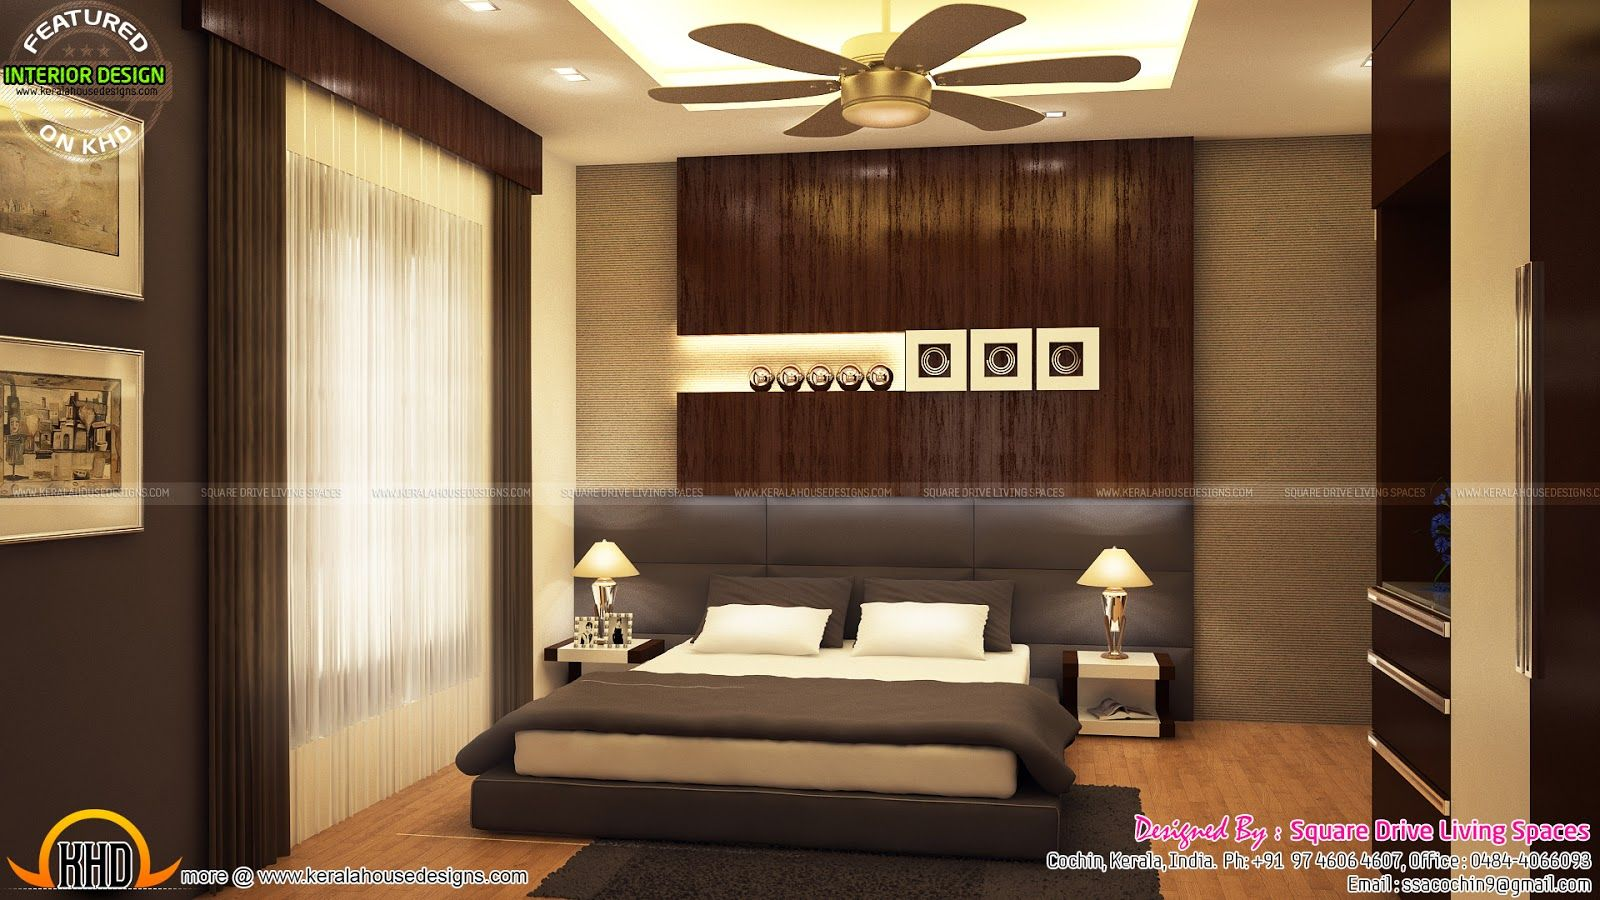 Furniture Design For Bedroom In India Fascinating Interior Designs Master Bedroom Living Kitchen And Under Stair Decorating Design